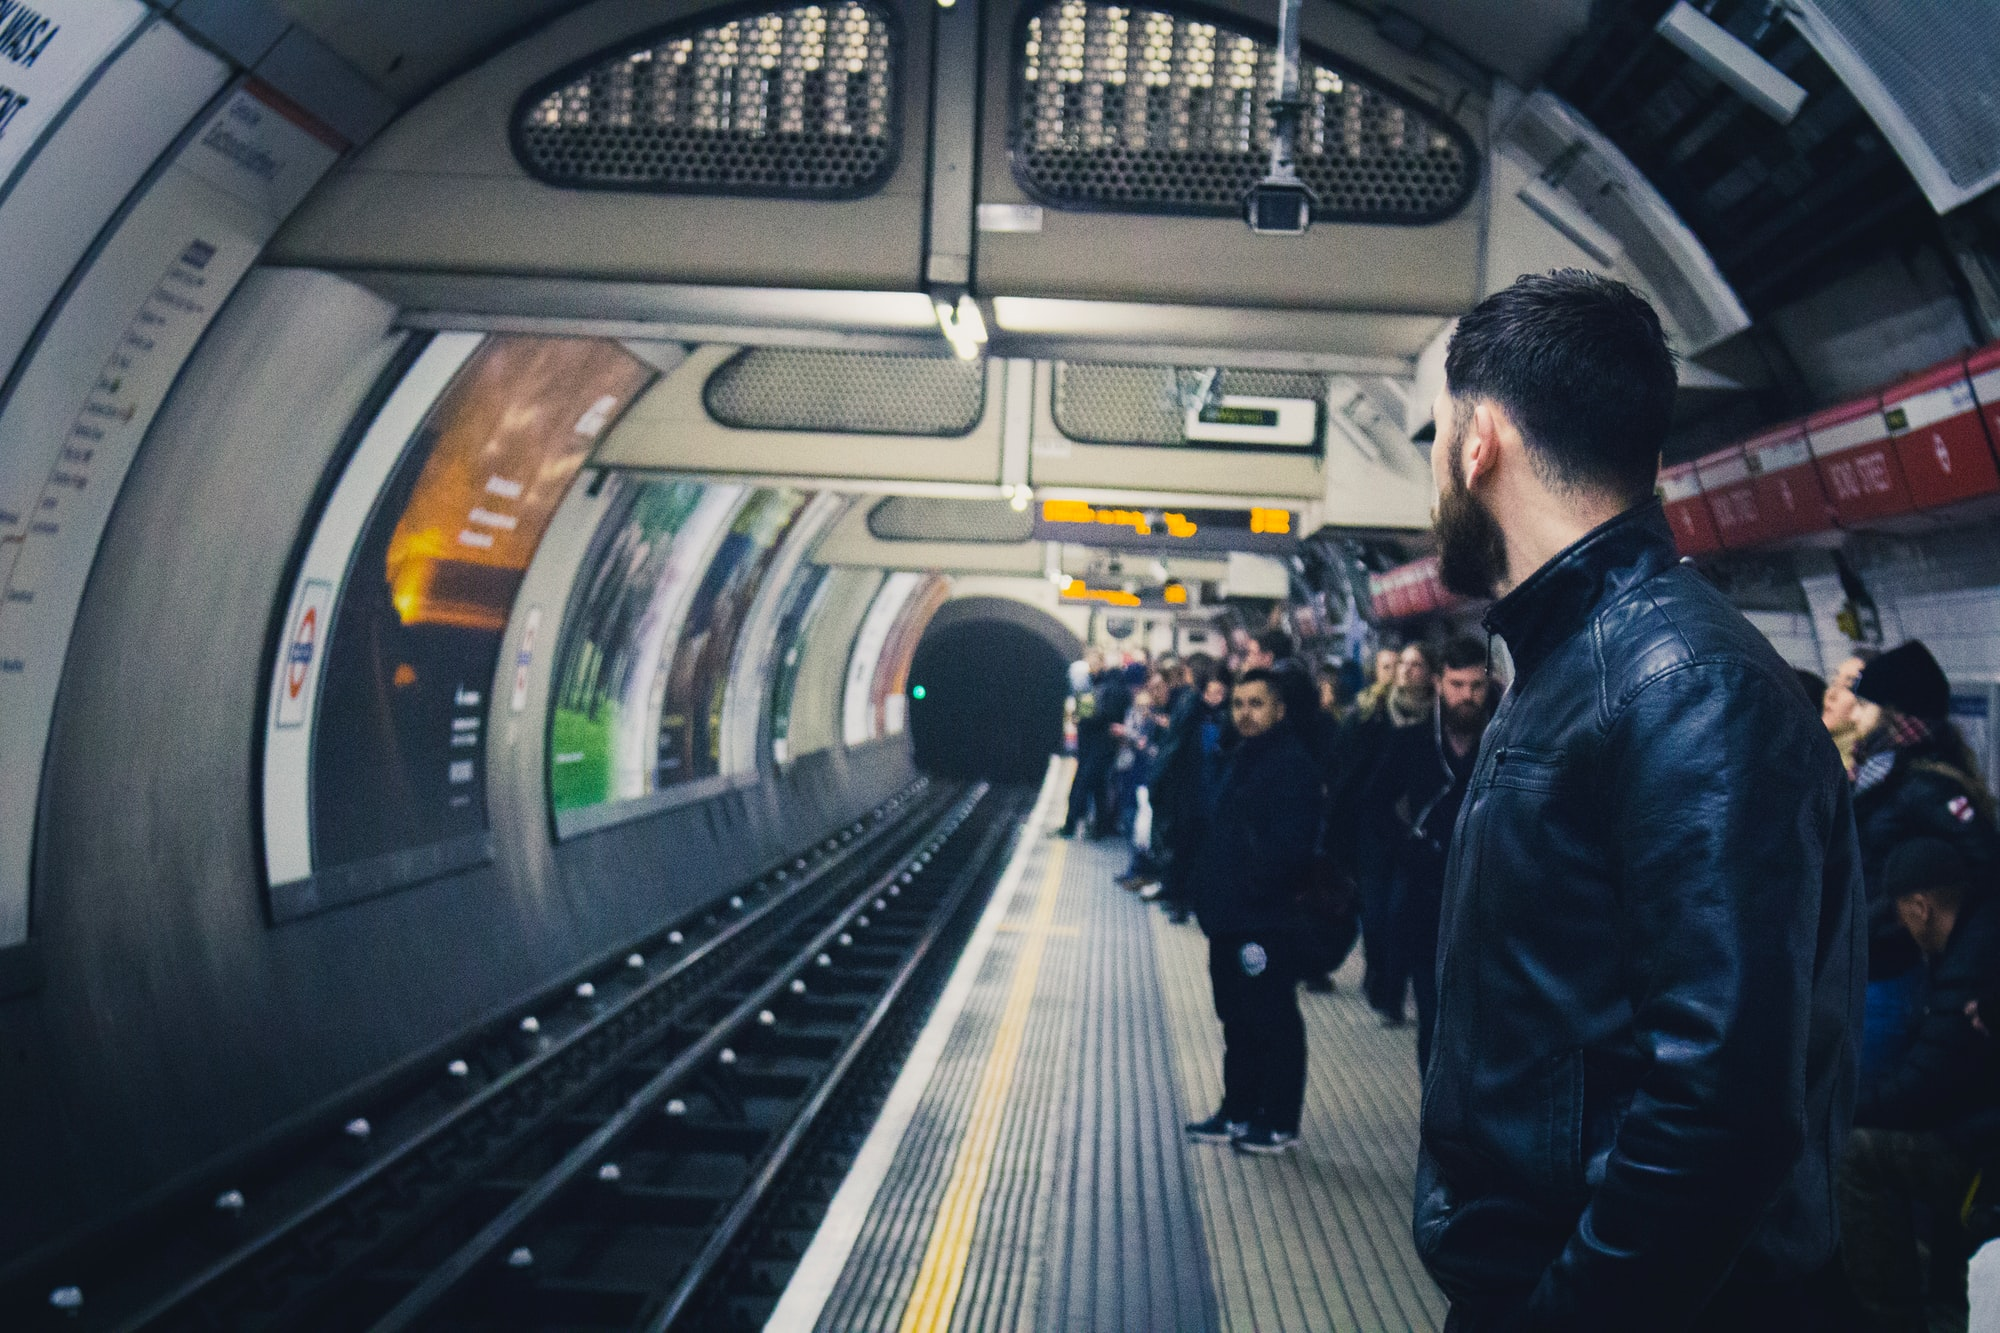 We often travel around London on the underground. Going to restaurants, the cinema, or rock climbing –yes, rock climbing. The tubes are very efficient but the stations themselves are each unique in their own little way, some have buskers, others artwork, some have escalators and others lifts, but what's most unique are the people. There are always different people going to their different places.